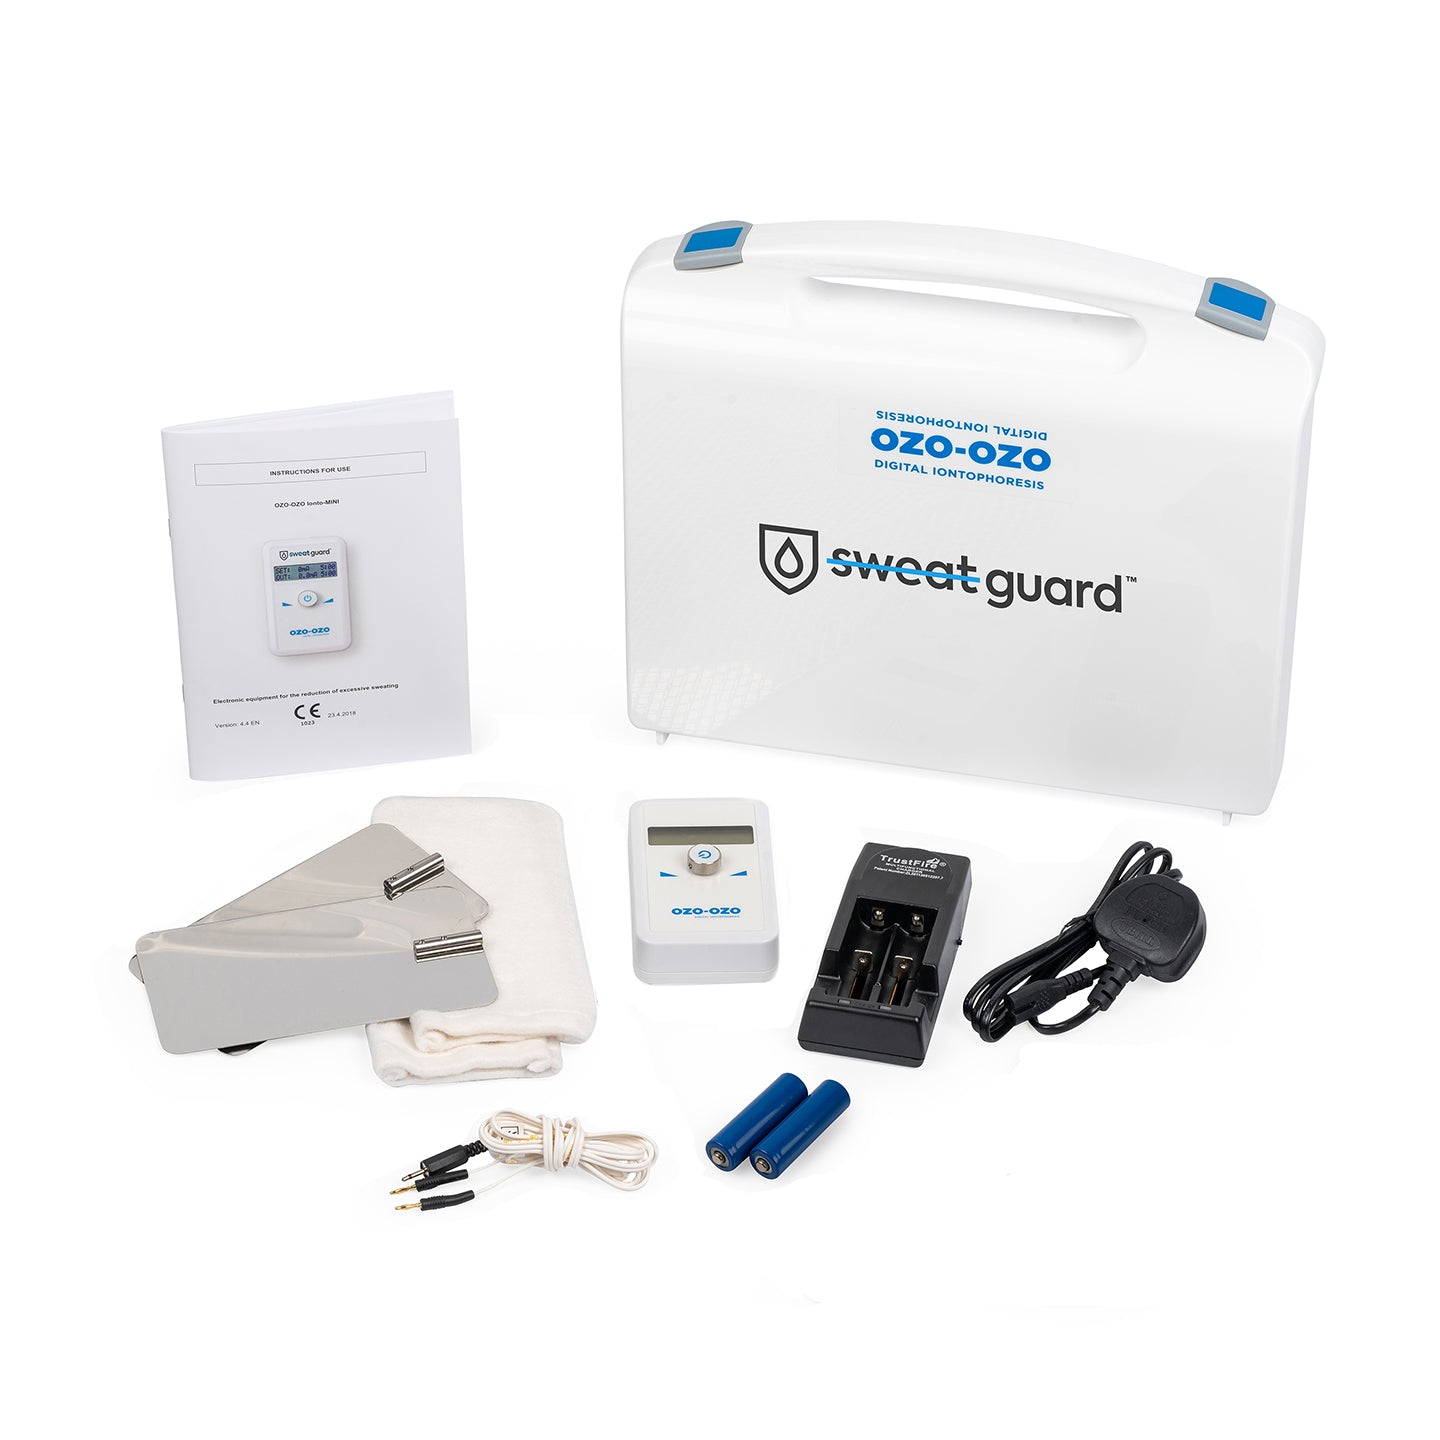 iontophoresis machine and kit  for  armpits  - Kit components.